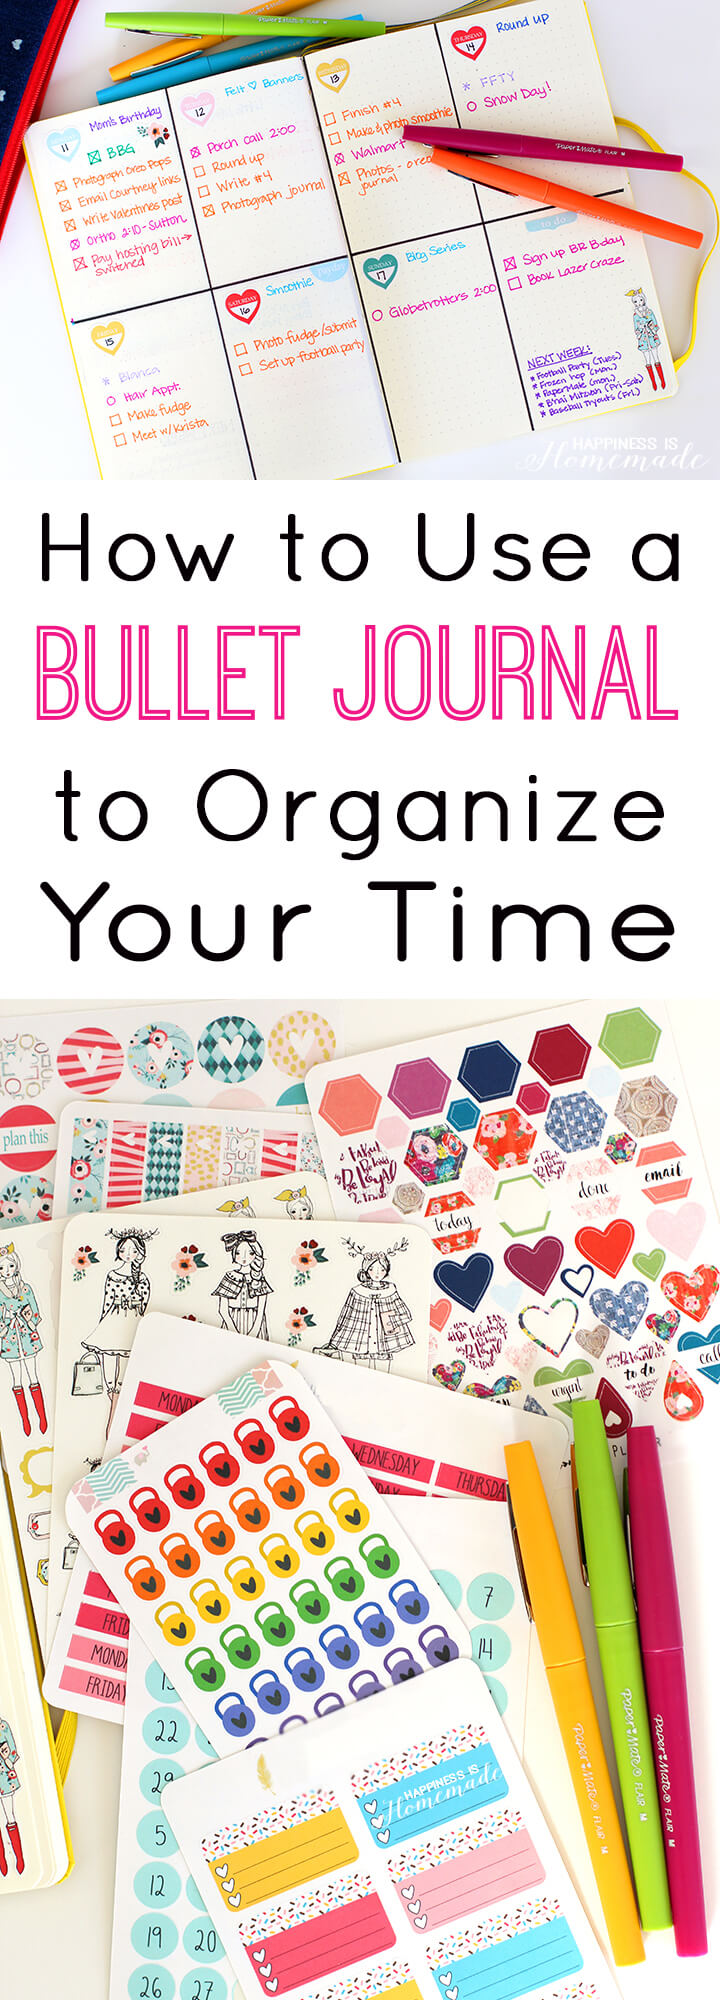 How to Use a Bullet Journal to Organize Your Time